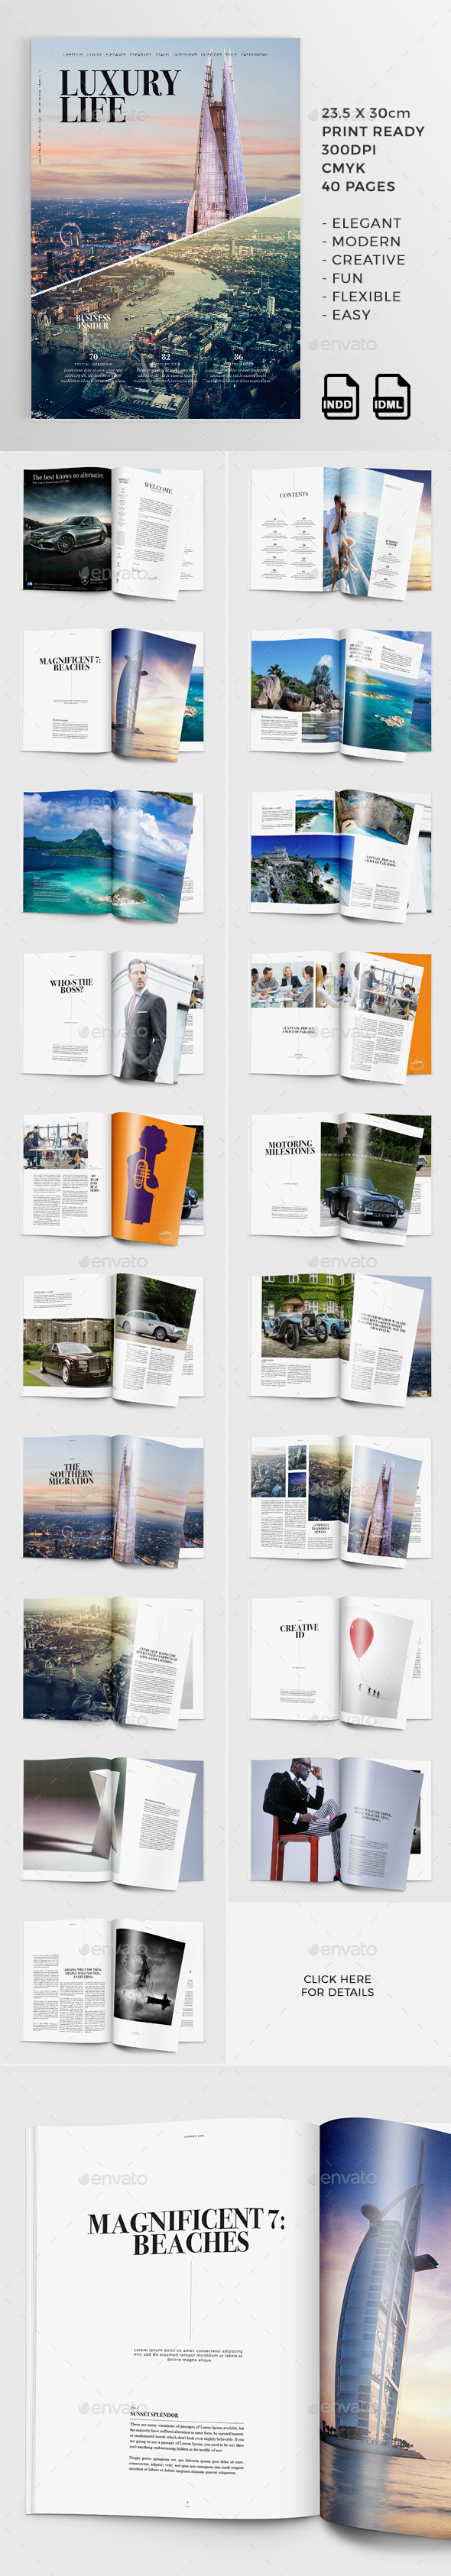 Luxury Life | 40 Pages Magazine - Magazines Print Templates